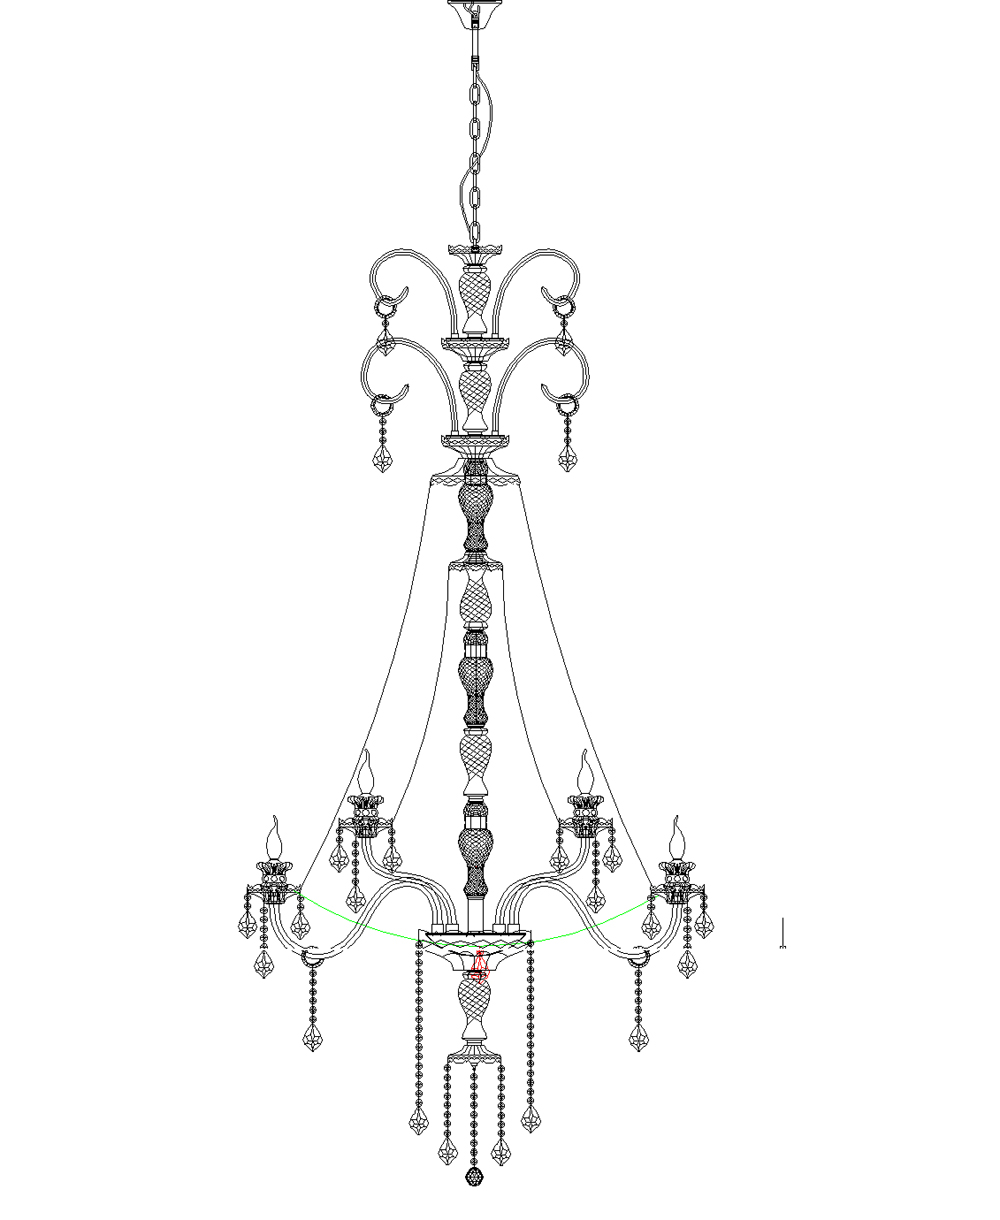 Large modern crystal chandelier for high ceiling extra large large modern crystal chandelier for high ceiling extra large chandelier living room led luxury chandeliers industrial villa hall in chandeliers from lights arubaitofo Image collections